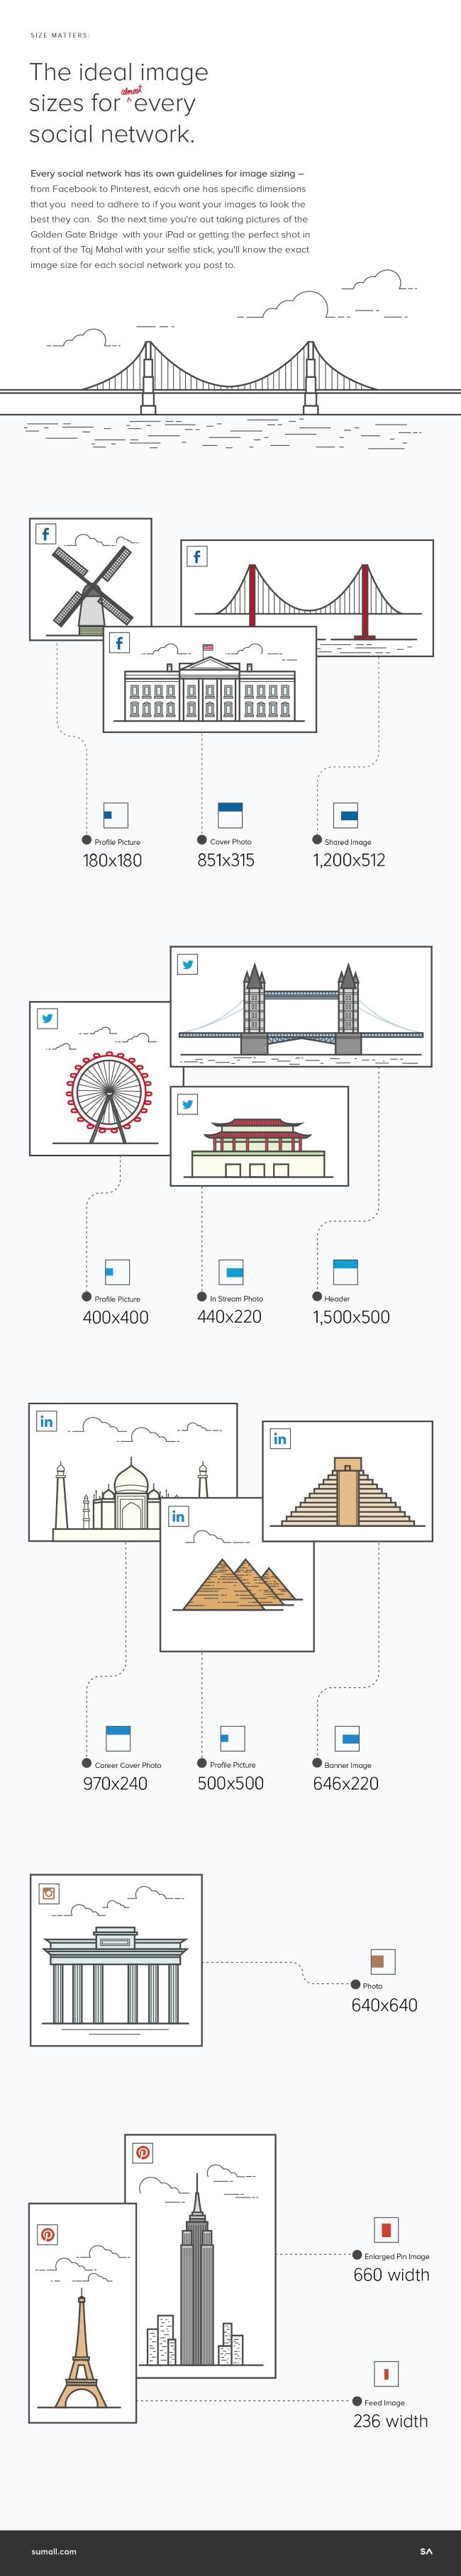 Ideal Image Sizes for Social Networks